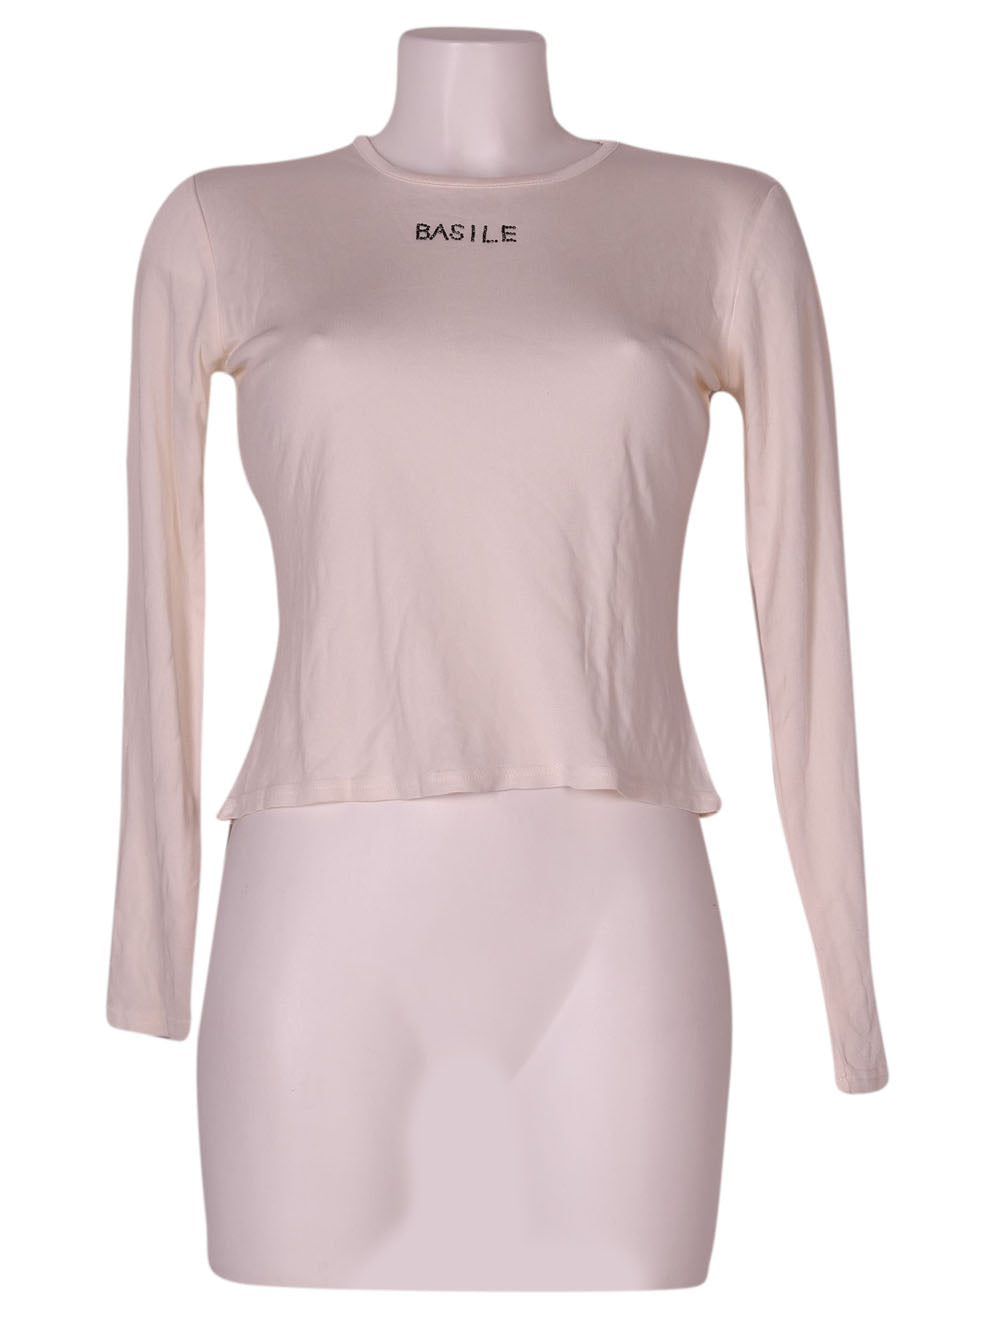 Front photo of Preloved Basile Beige Woman's long sleeved shirt - size 10/M